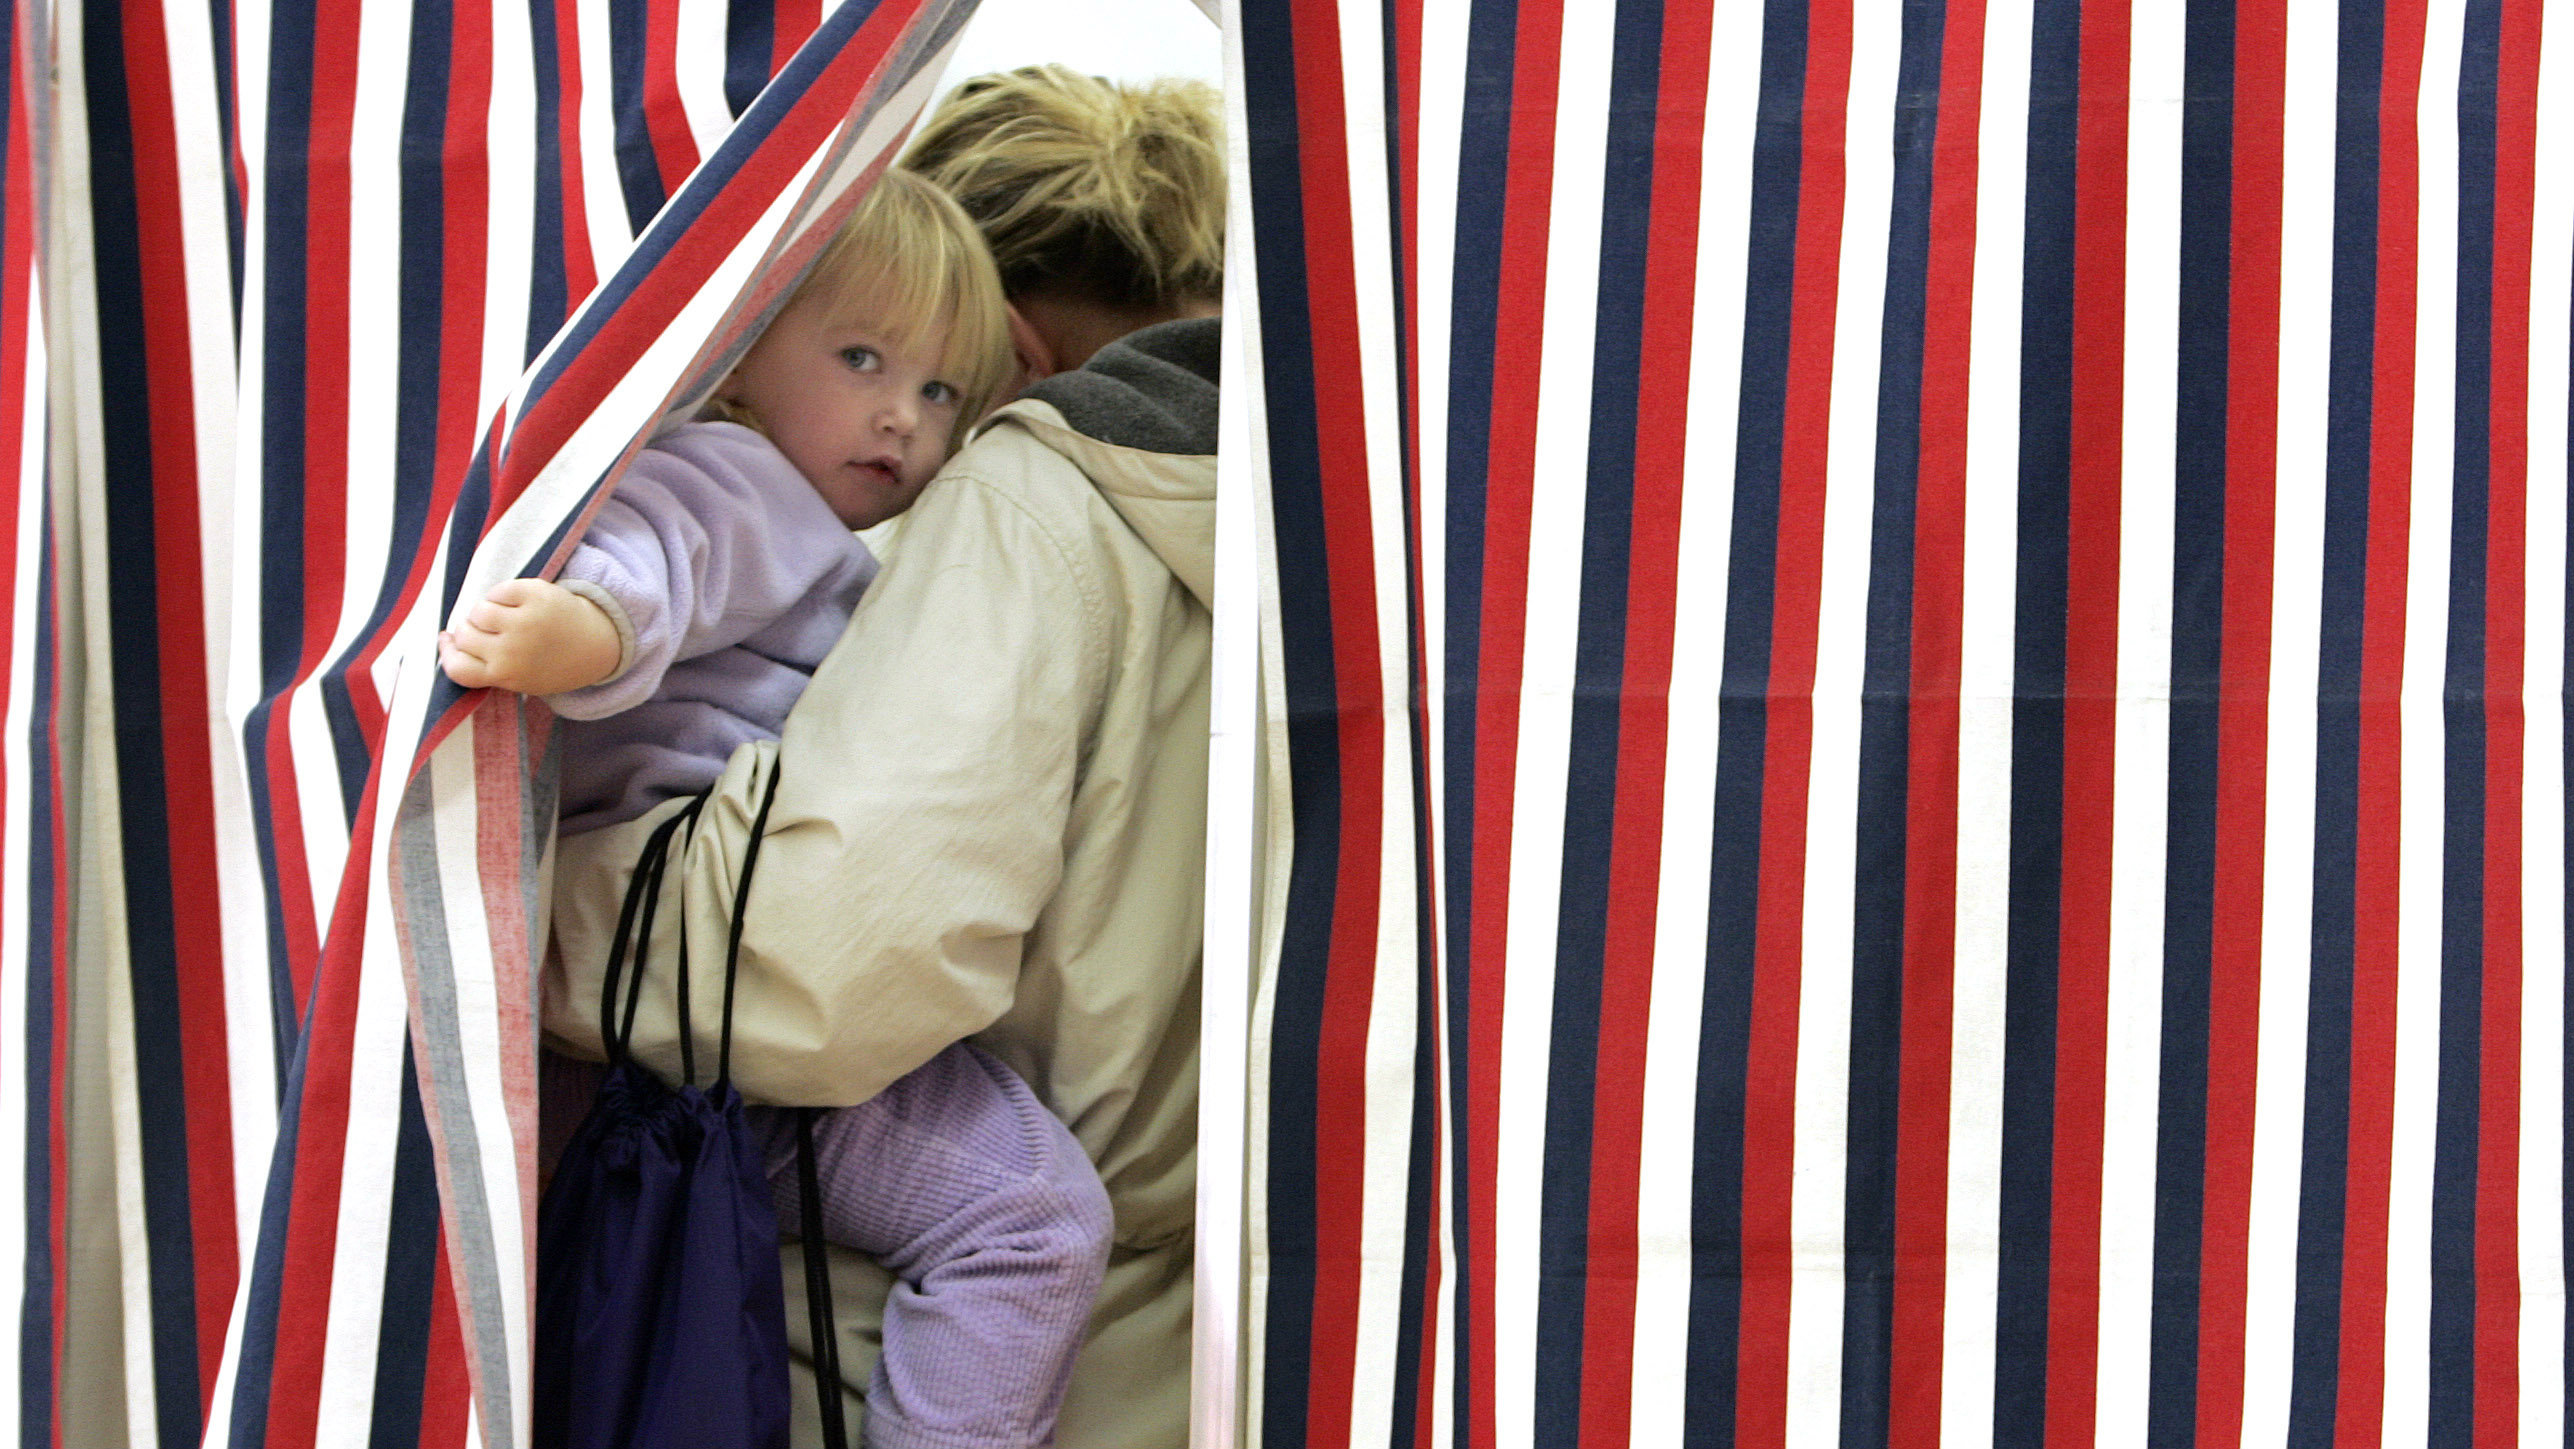 Elyse Holmes, 2, peaks out as her mother Helen Holmes votes at Madbury Town Hall in Madbury, New Hampshire November 4, 2008. REUTERS/Adam Hunger (UNITED STATES) US PRESIDENTIAL ELECTION CAMPAIGN 2008 (USA)